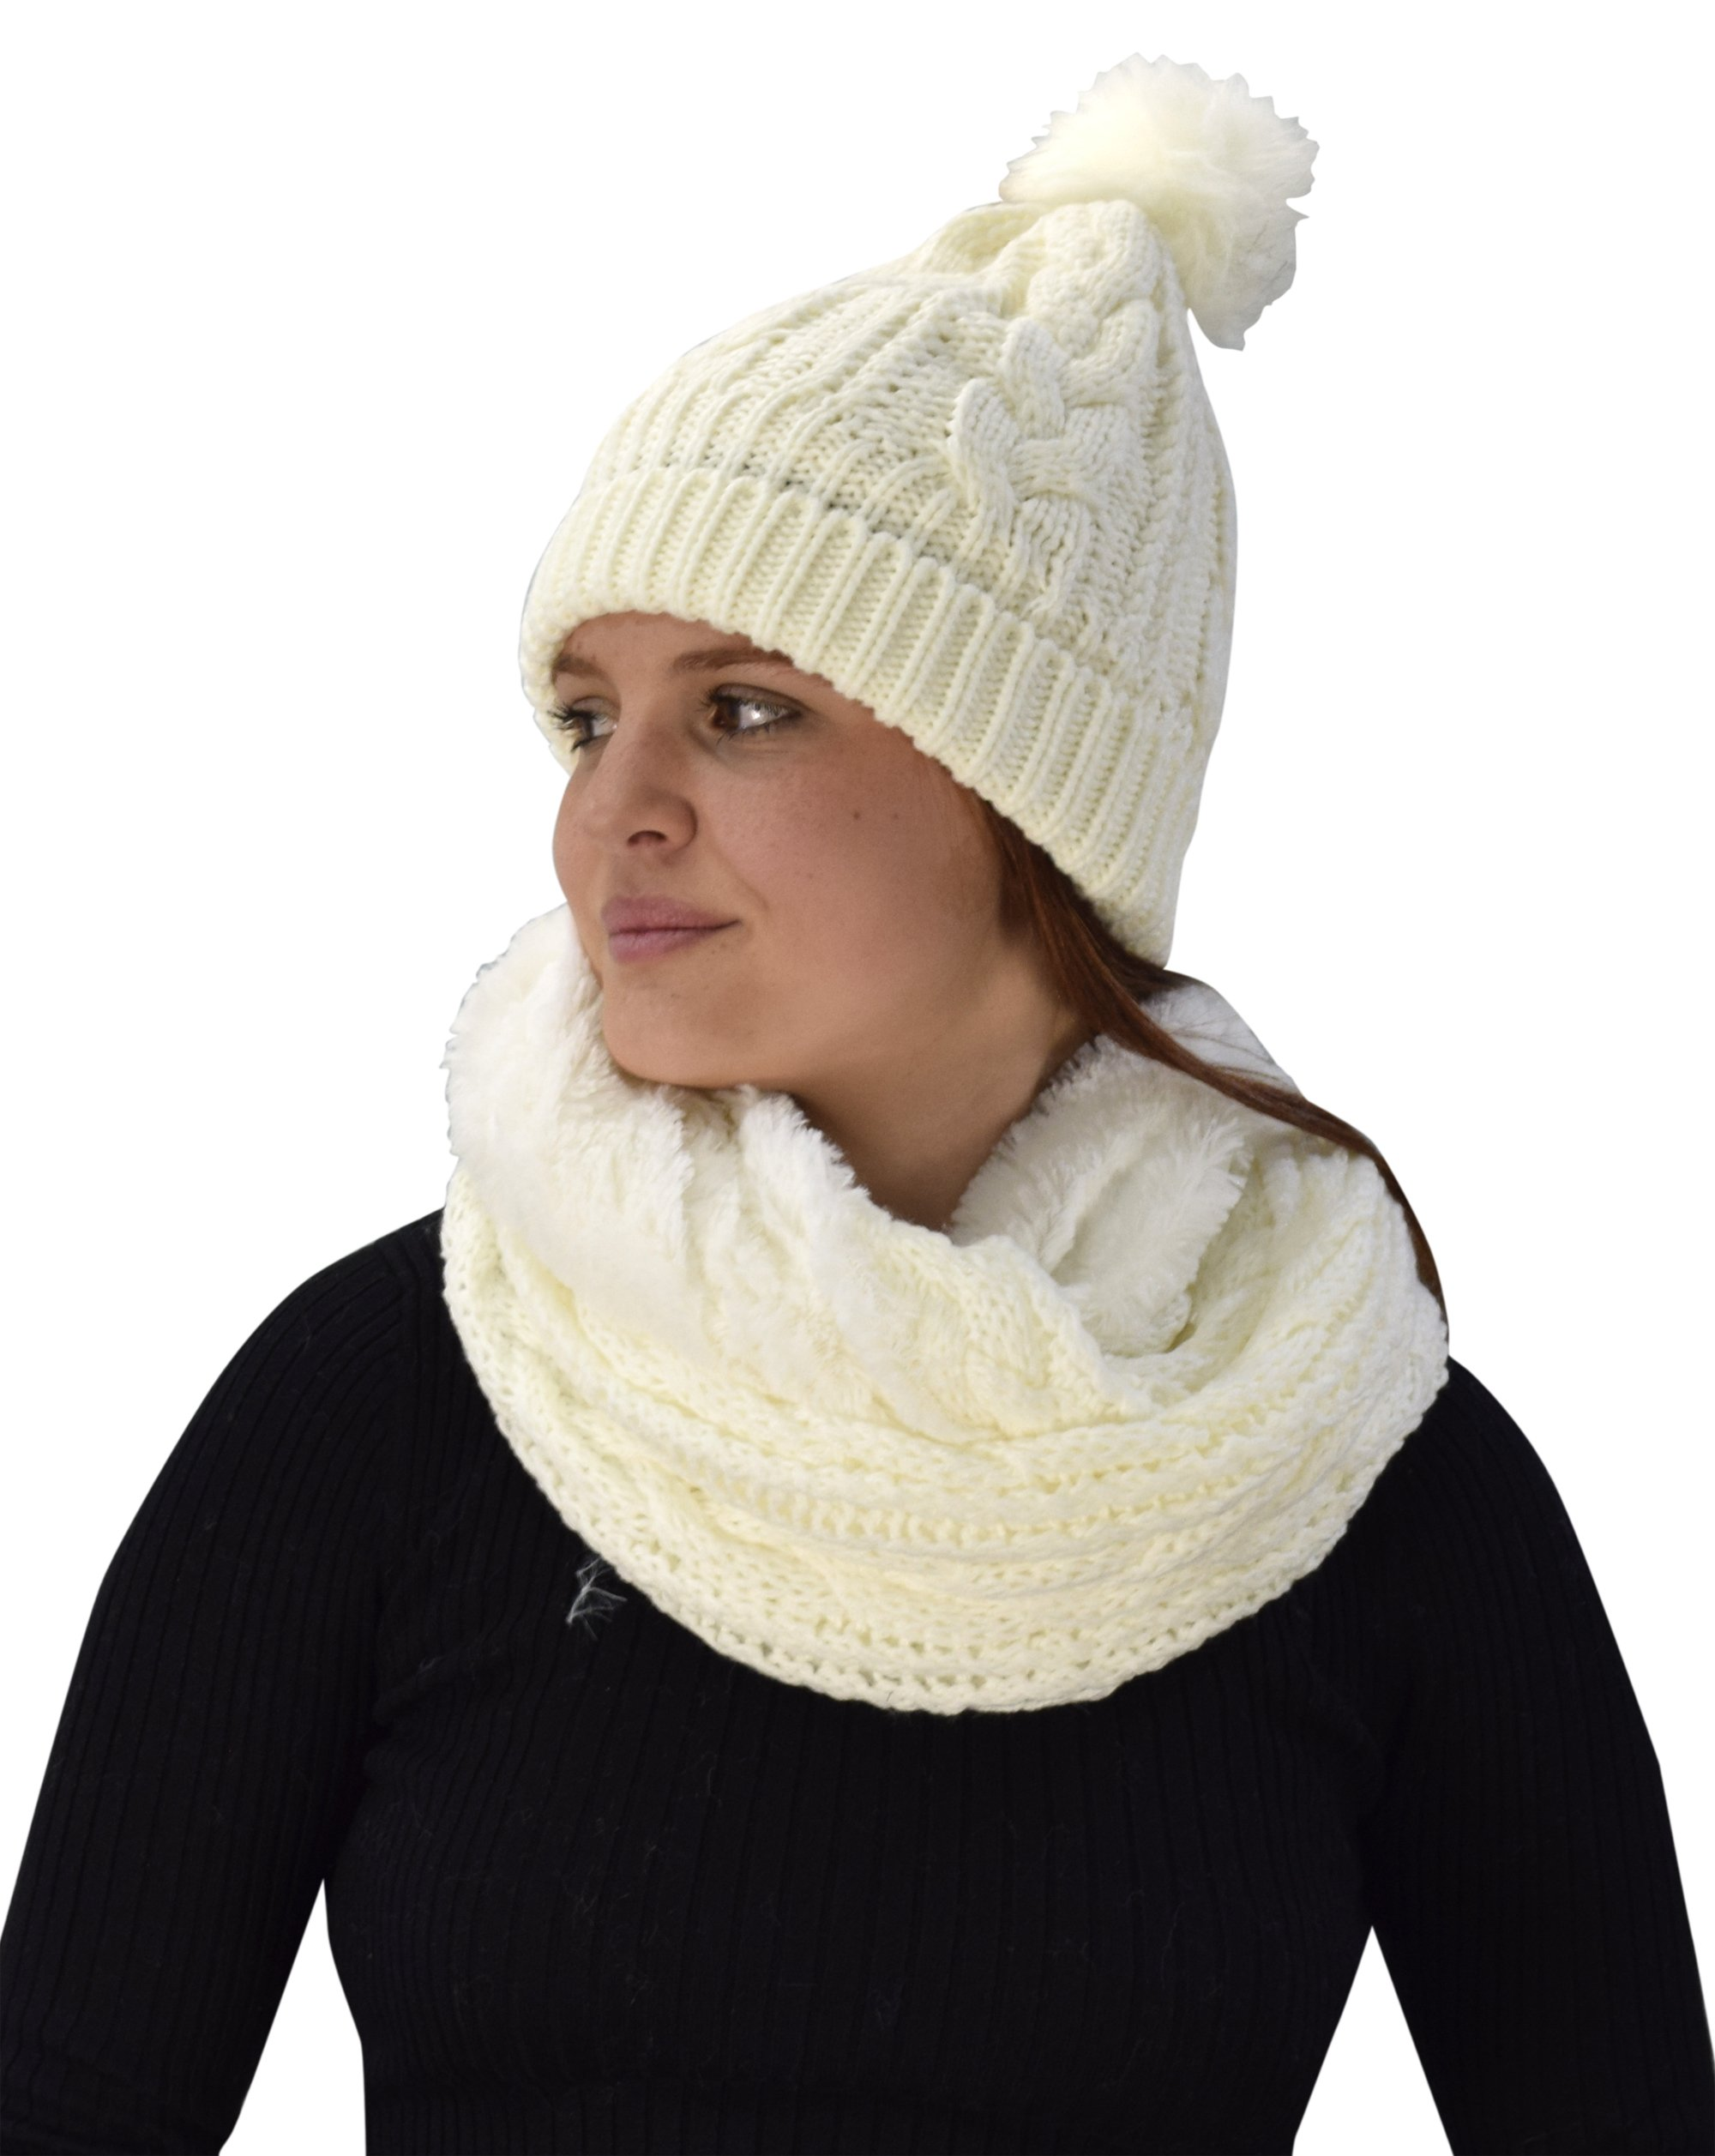 Peach Couture Thick Cable Knit Faux Fur Plush Double Layer Hat Infinity Scarf Set (Cream 97) by Peach Couture